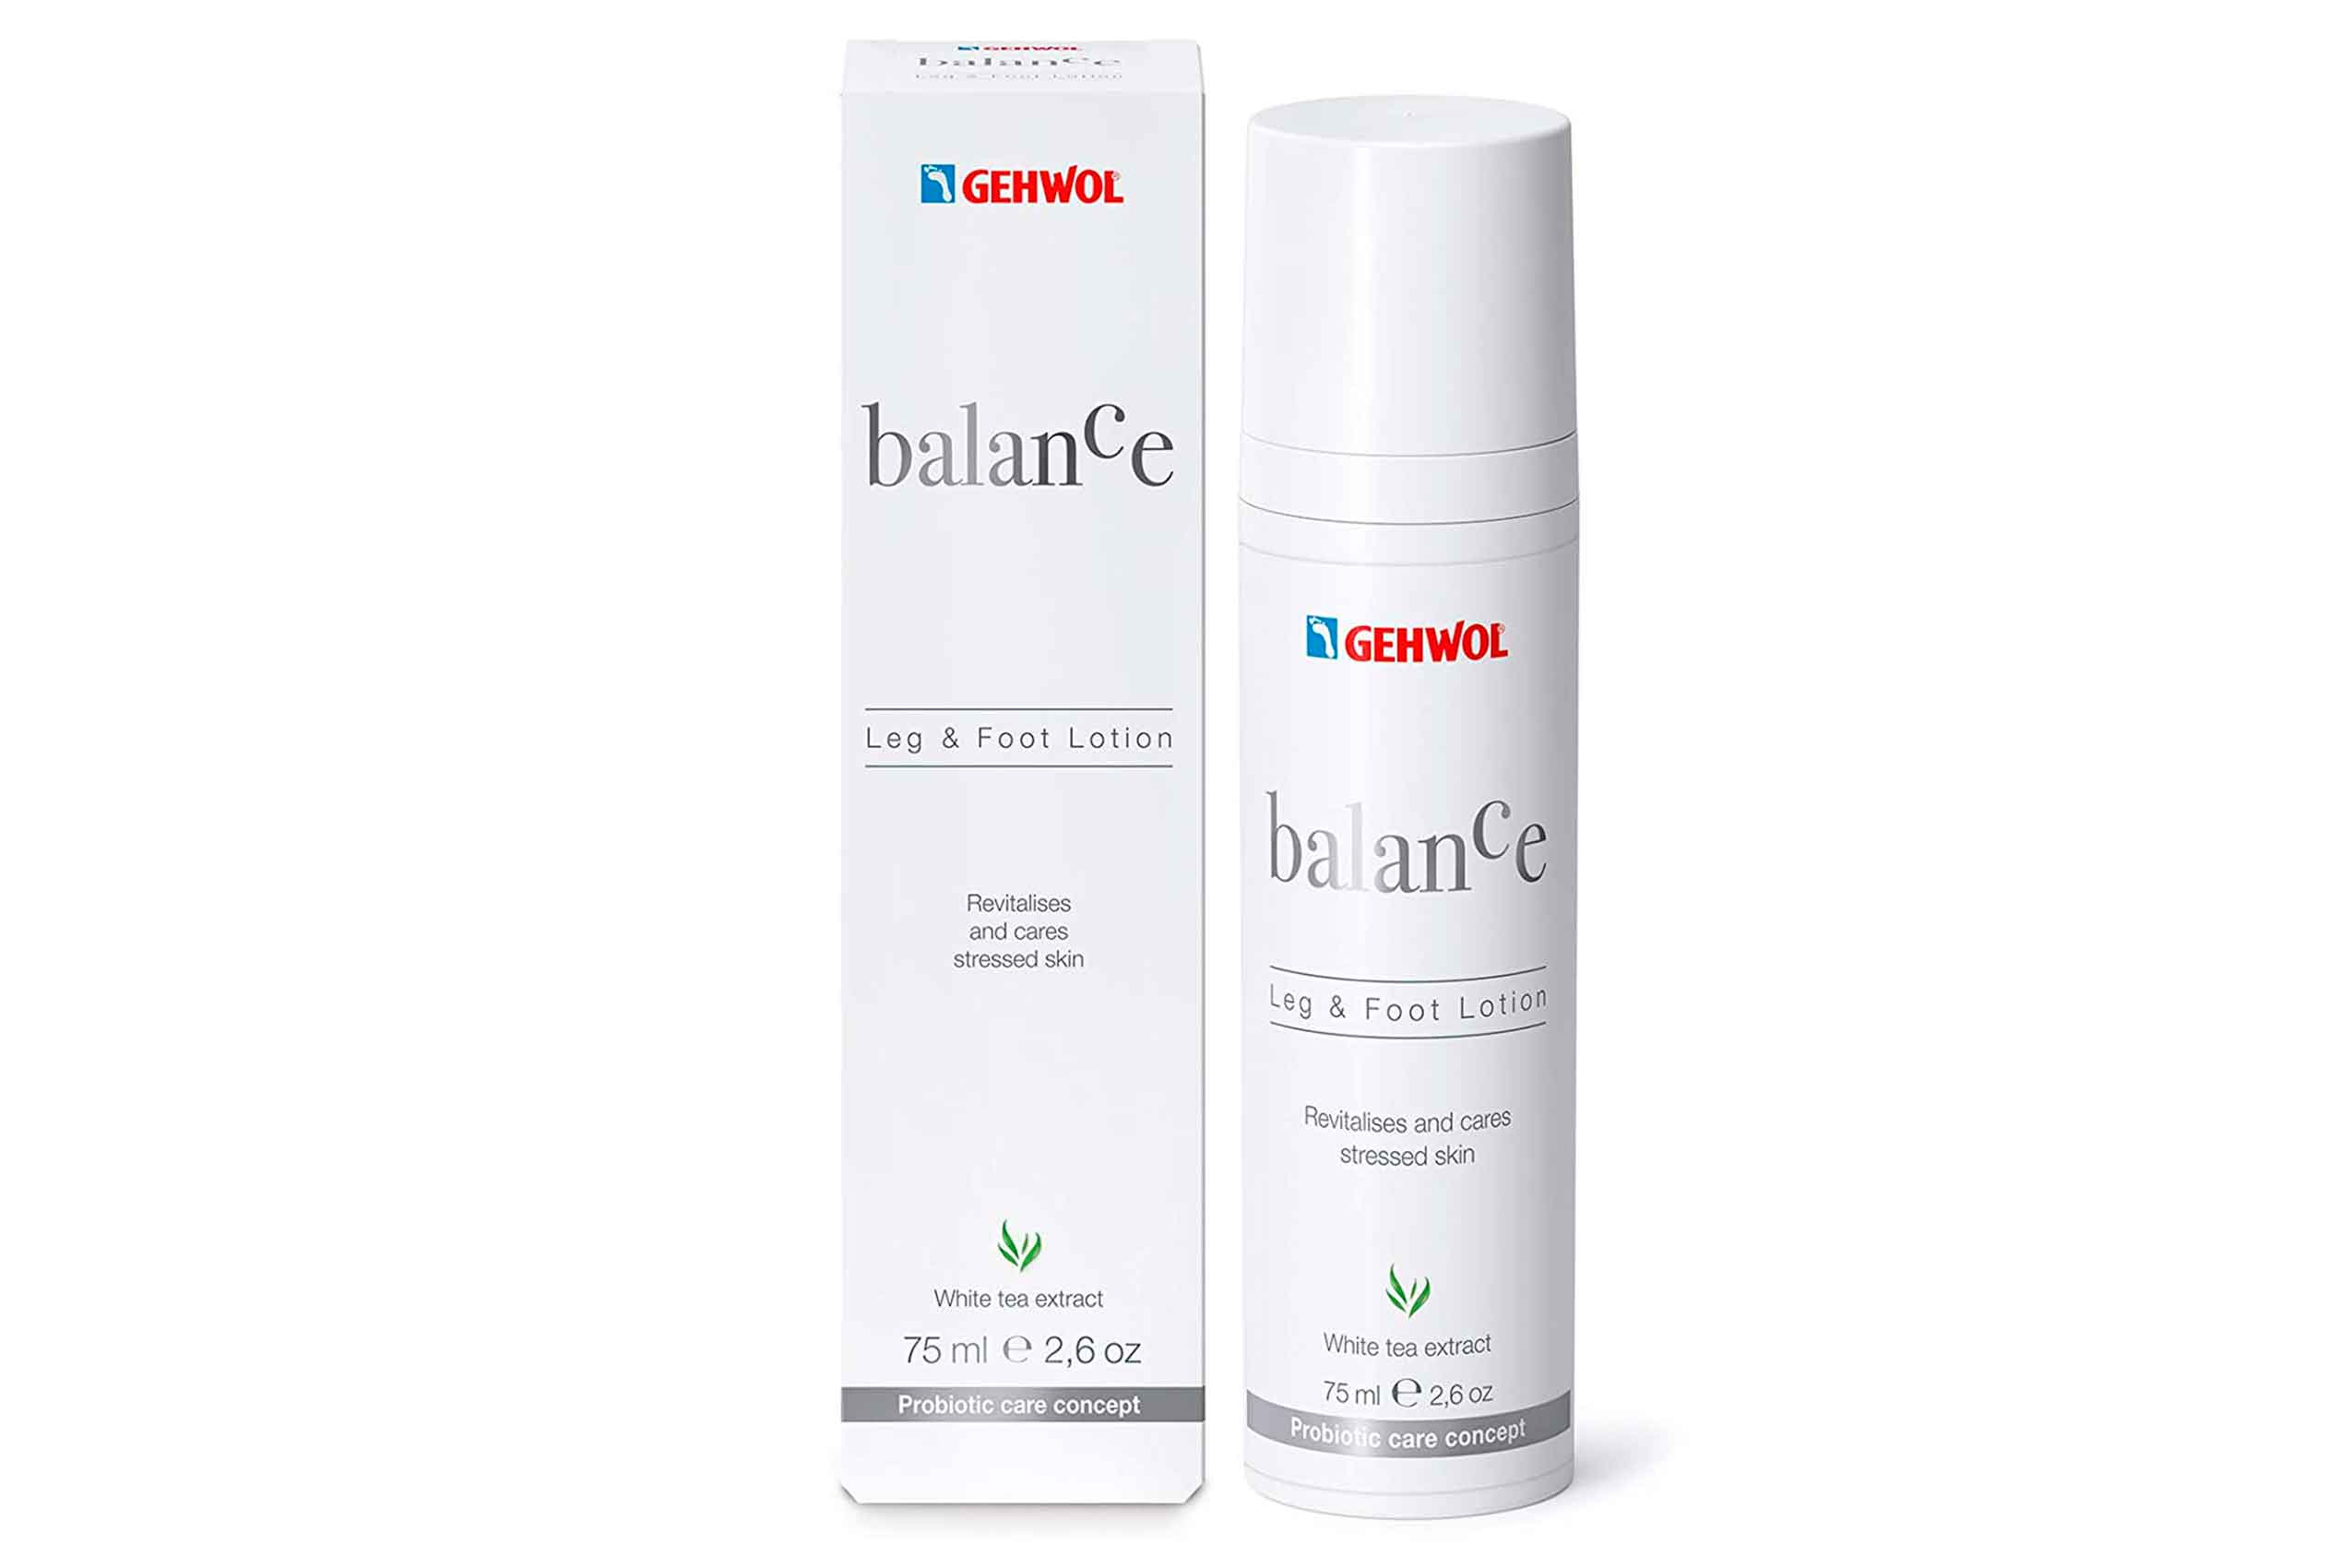 Gehwol Balance Leg & Foot Lotion 75 ML